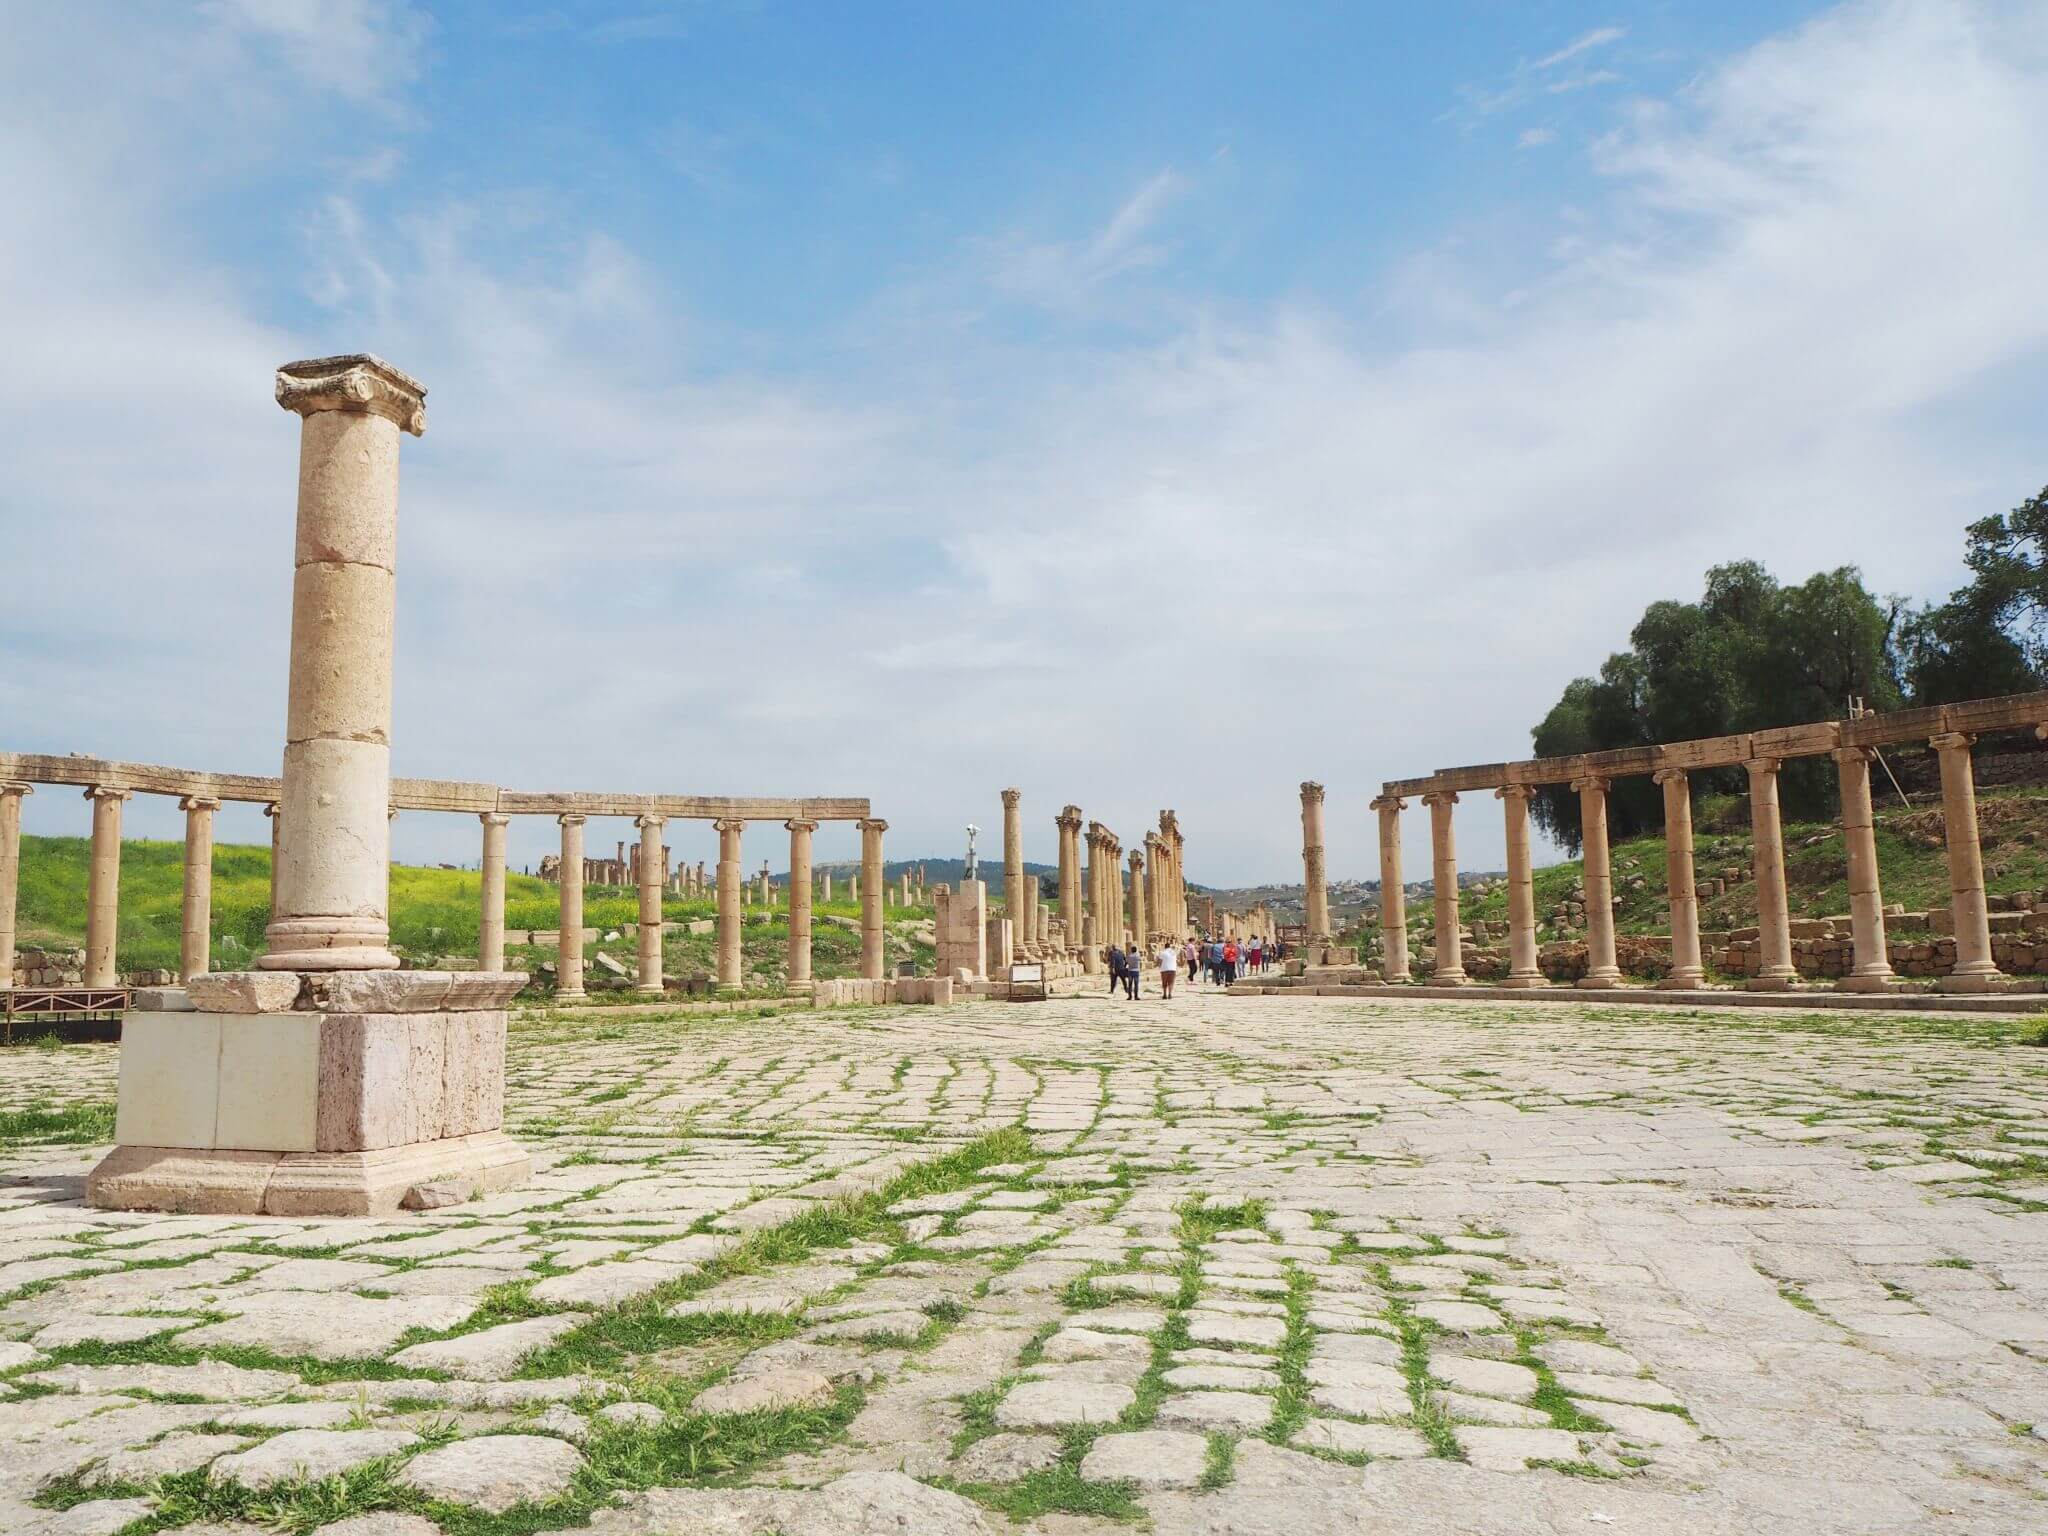 The columns of the roman forum in Jerash - one of the best day trips from Amman